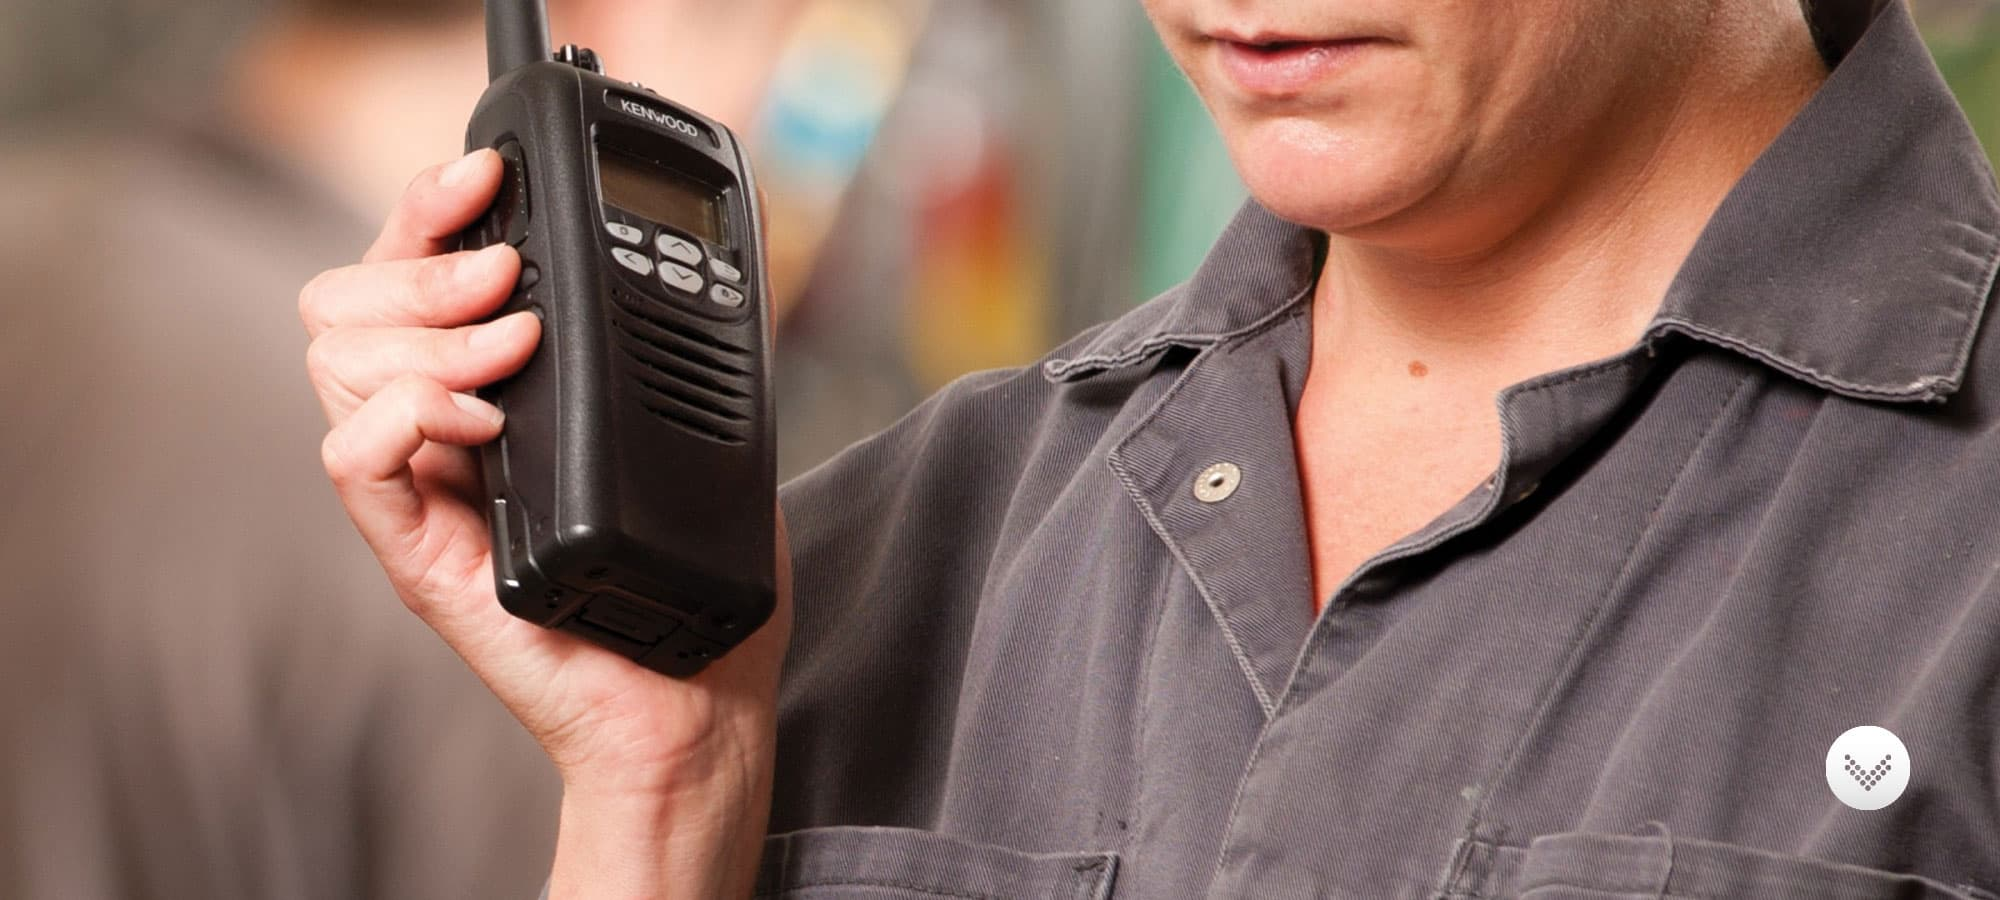 Female factory worker using a kenwood two way radio on the factory floor.